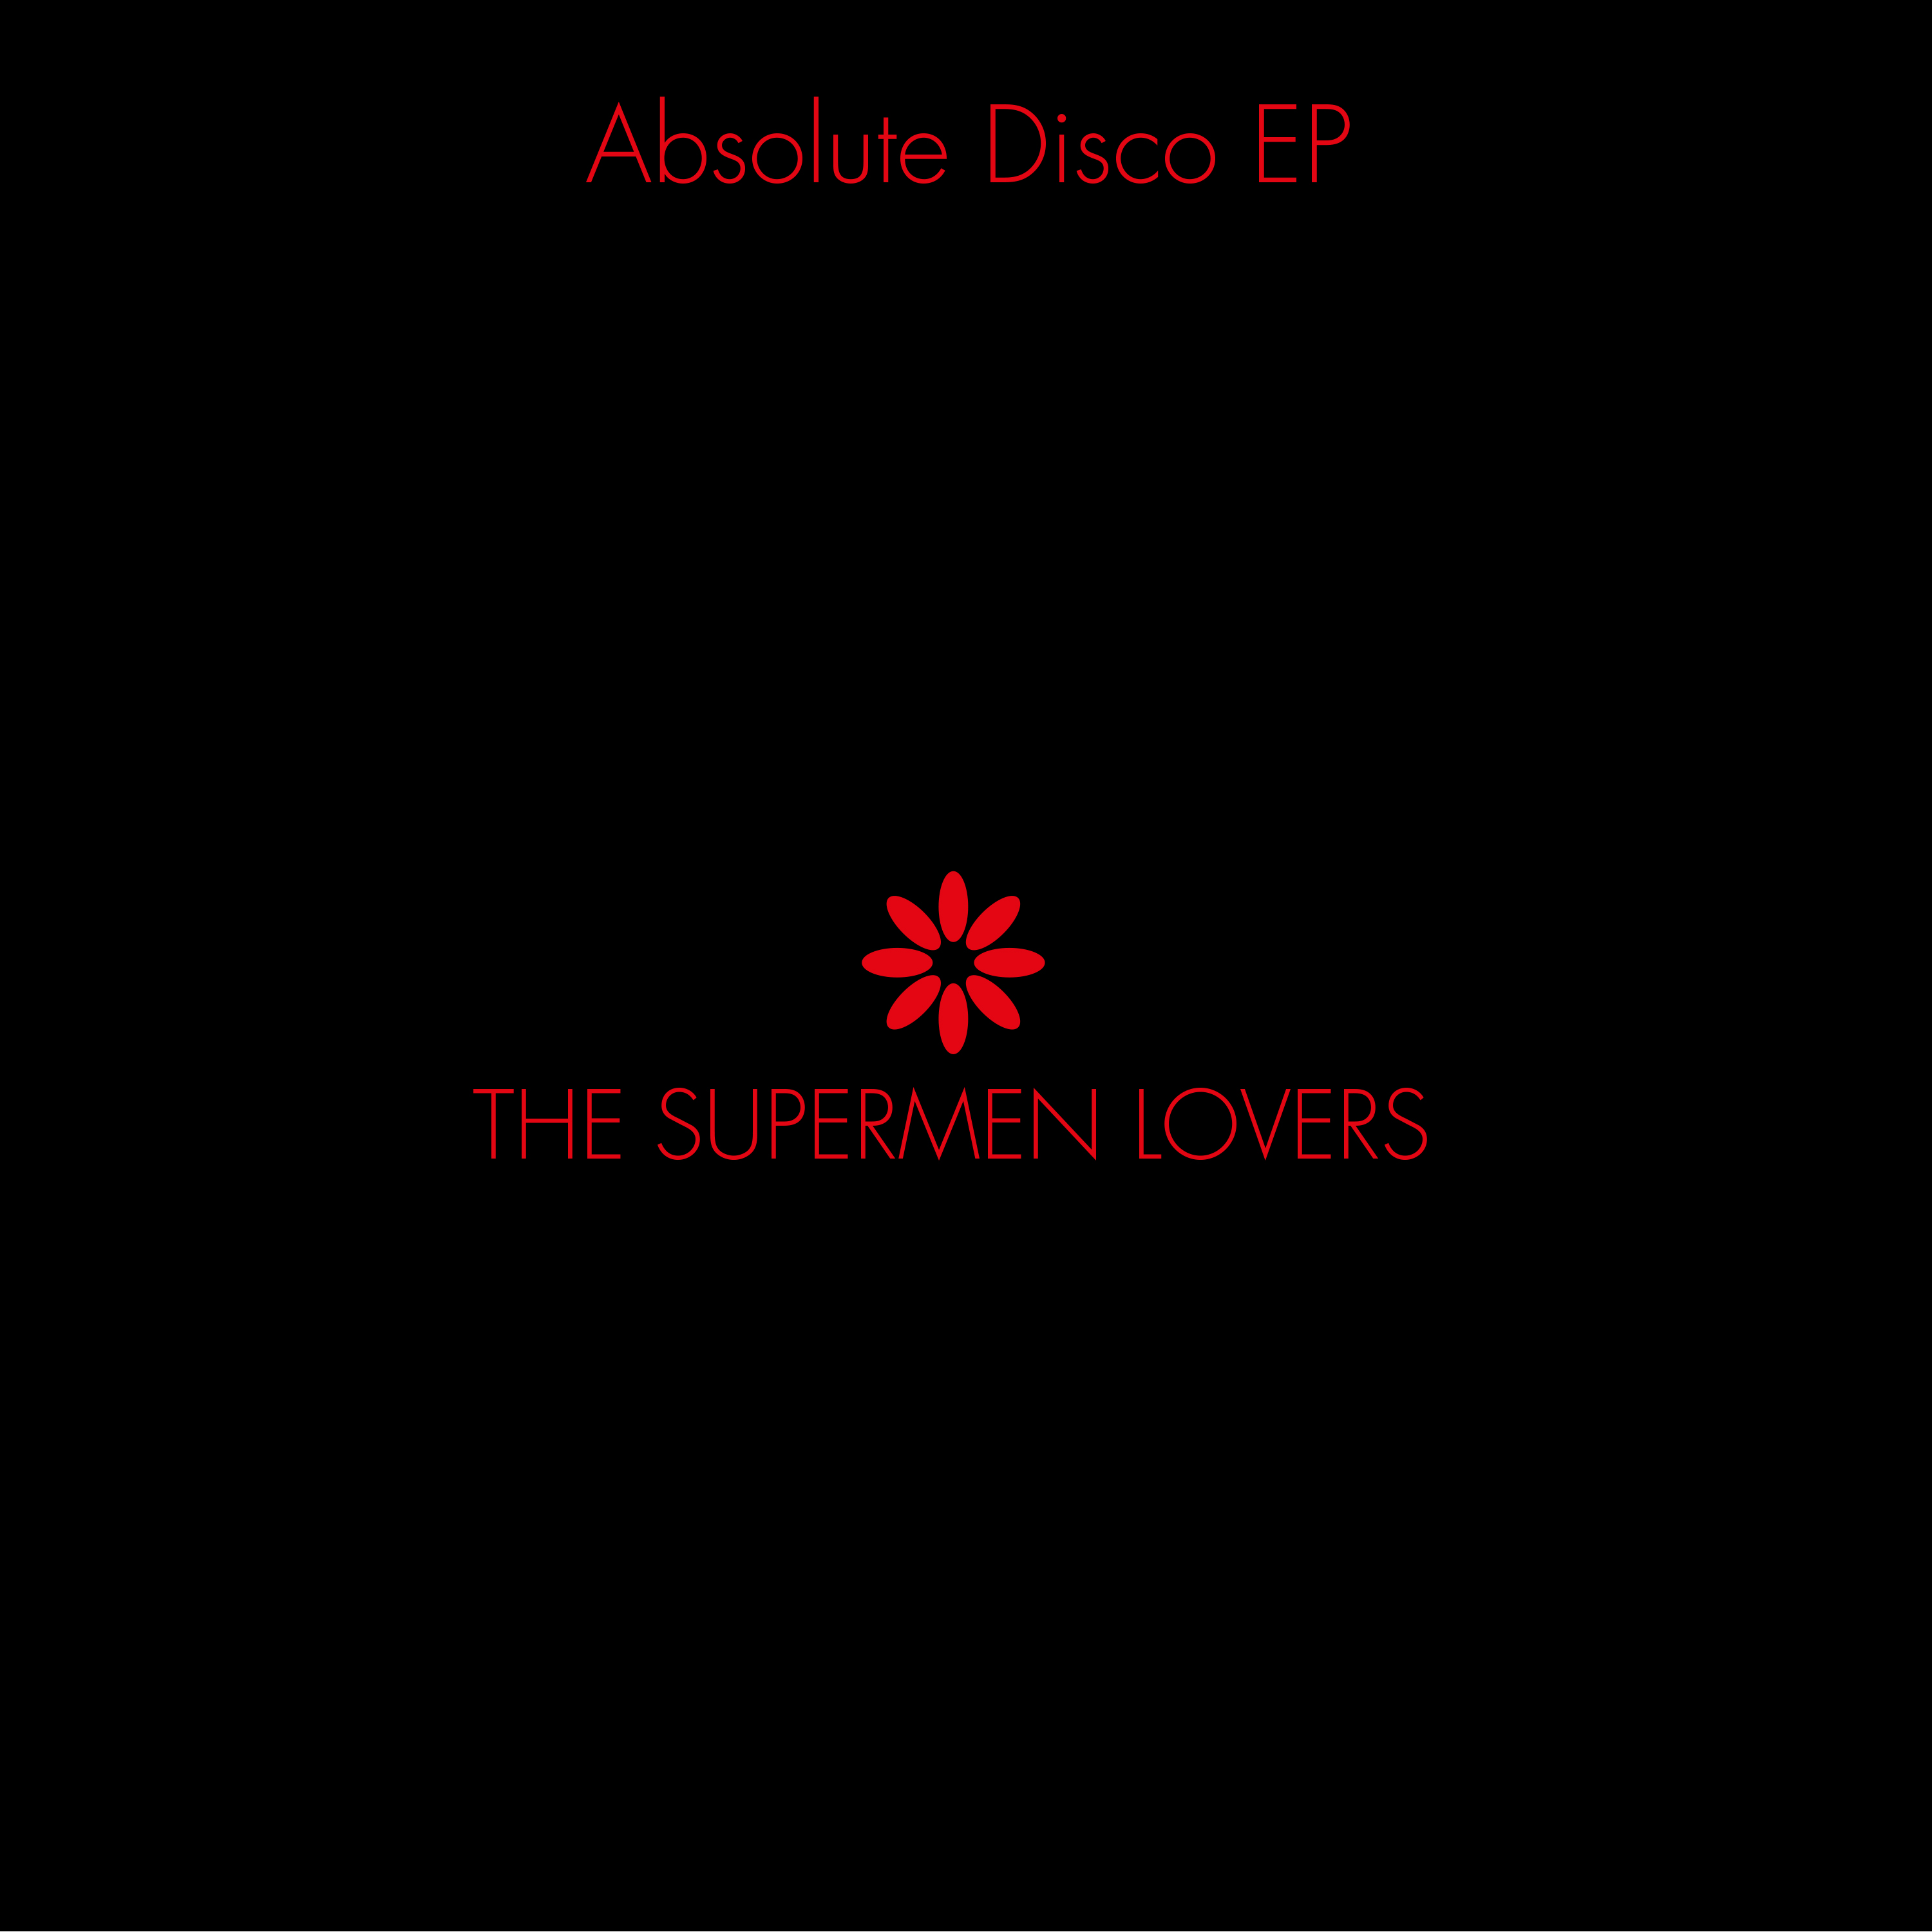 the_supermen_lovers-aboslute_diso_ep_-_cover.jpg